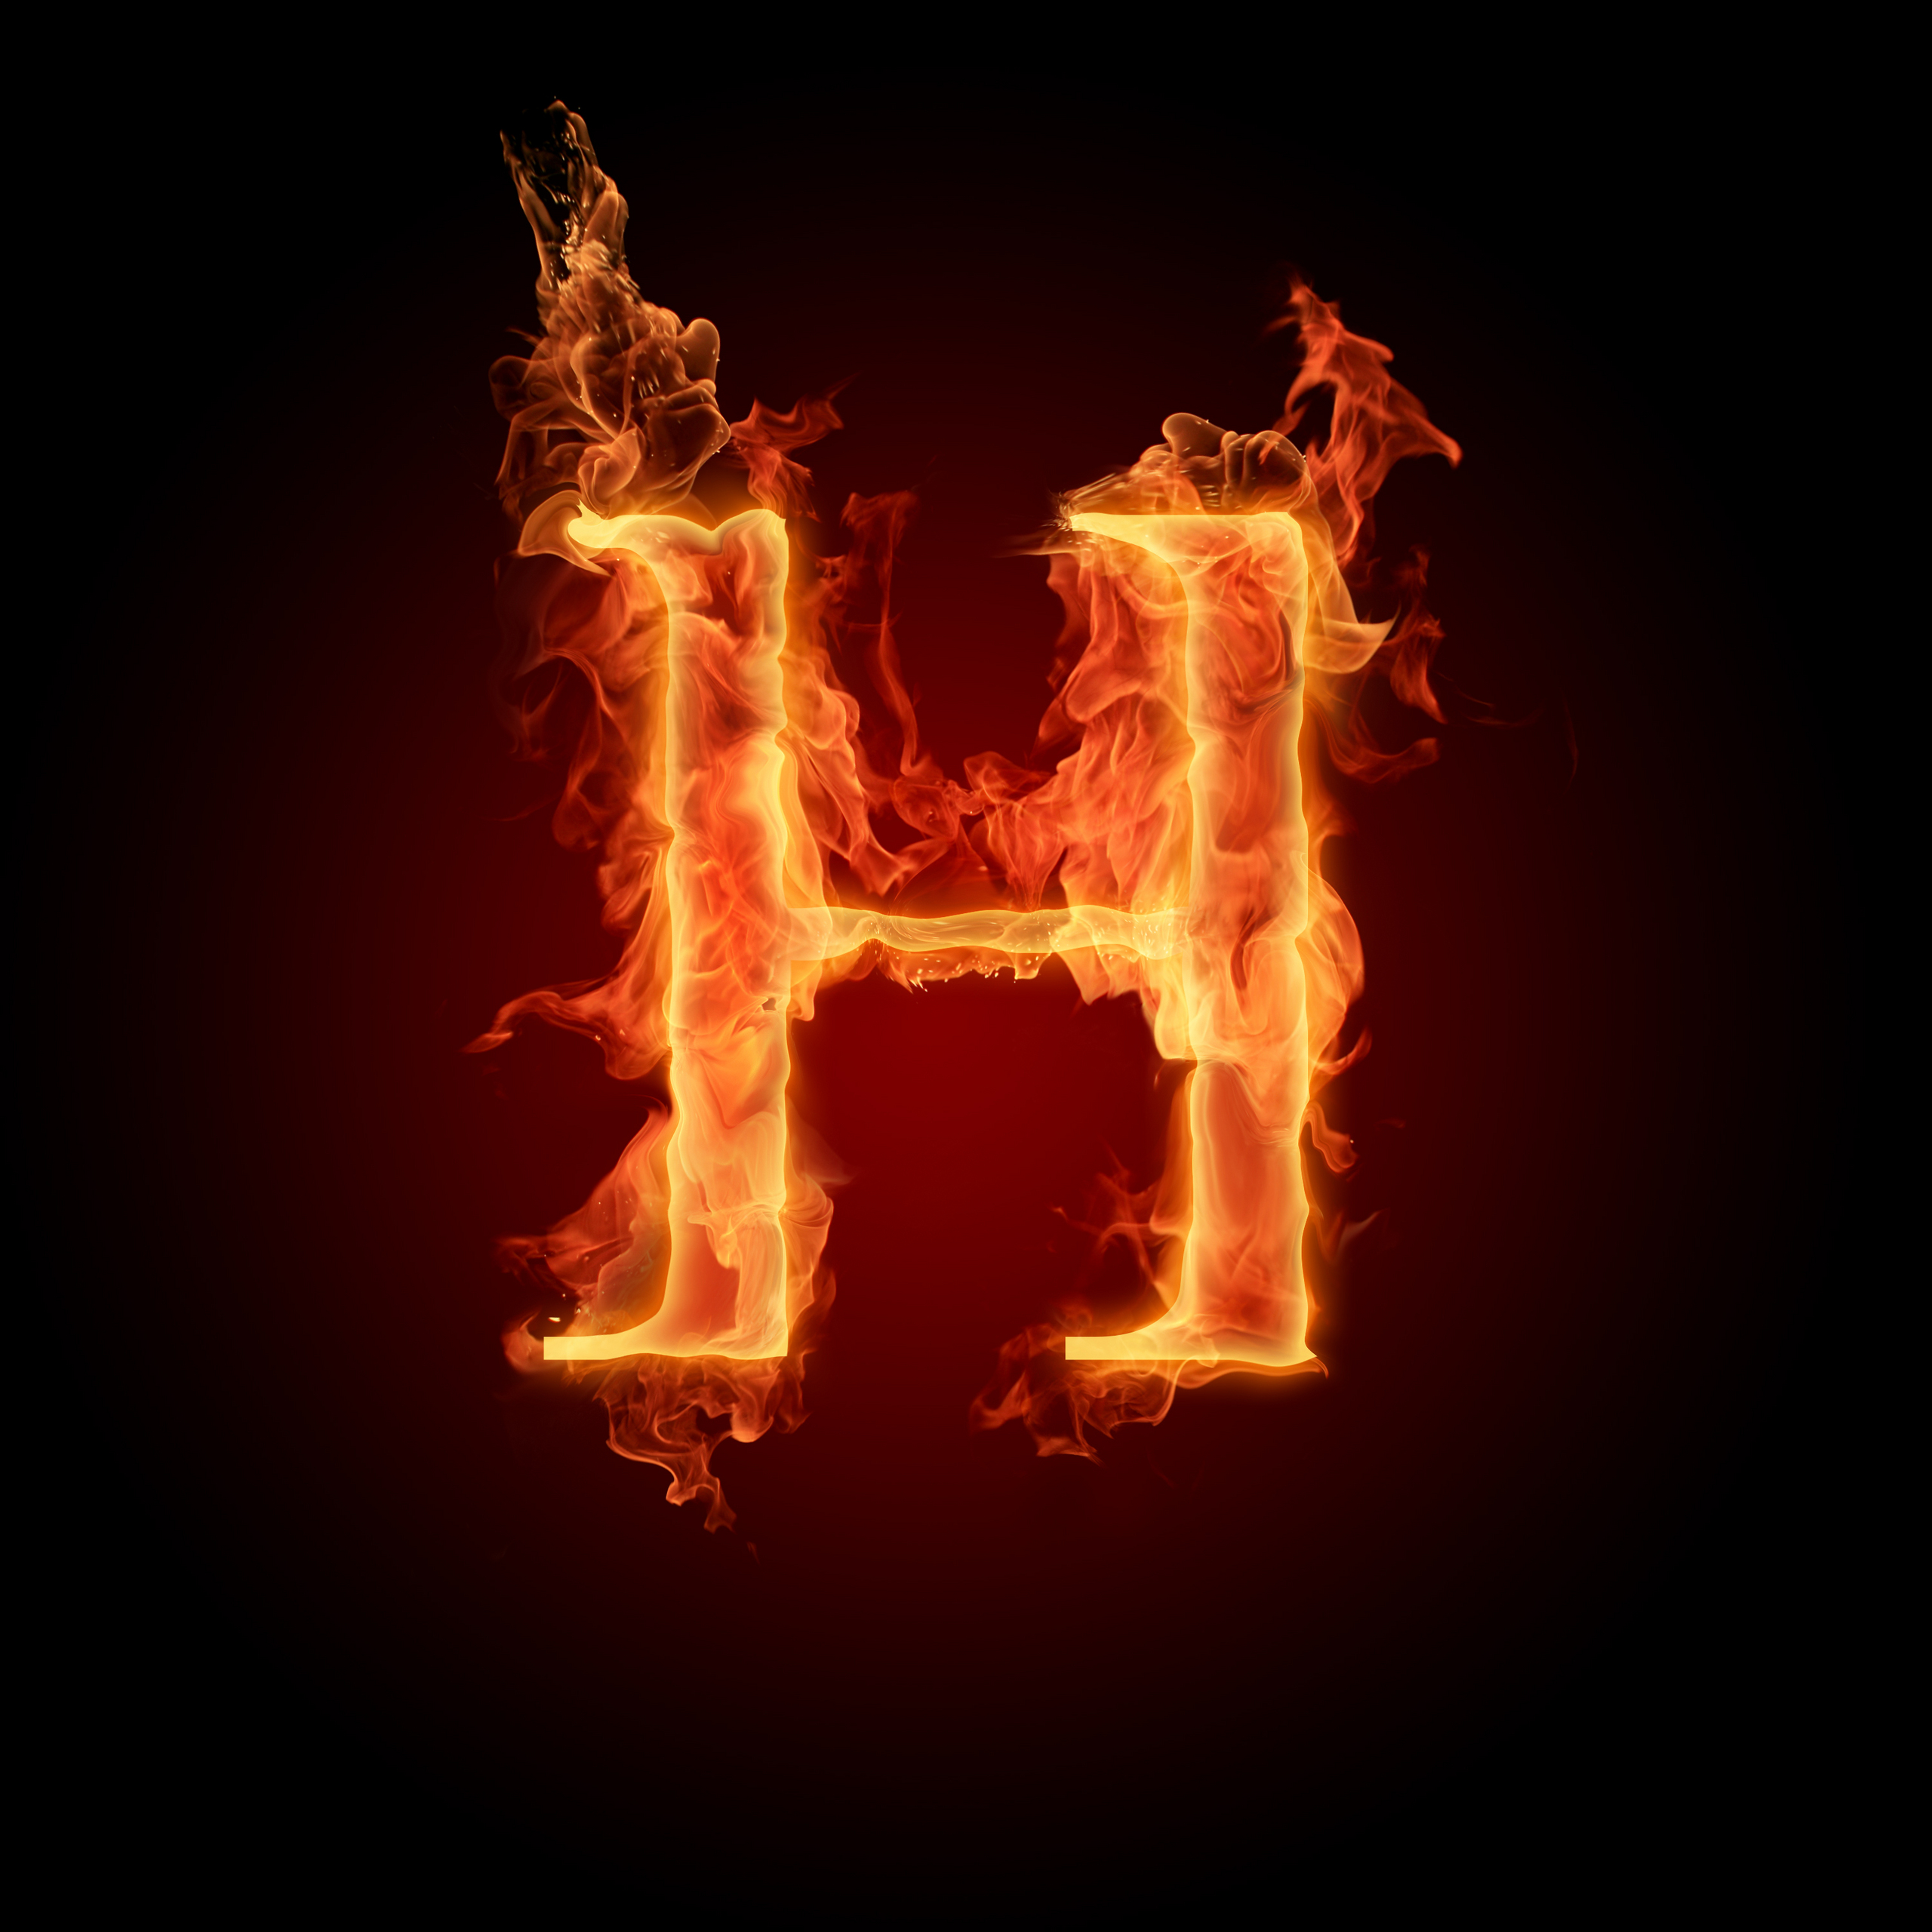 Genial The Letter H Images The Letter H HD Wallpaper And Background Photos